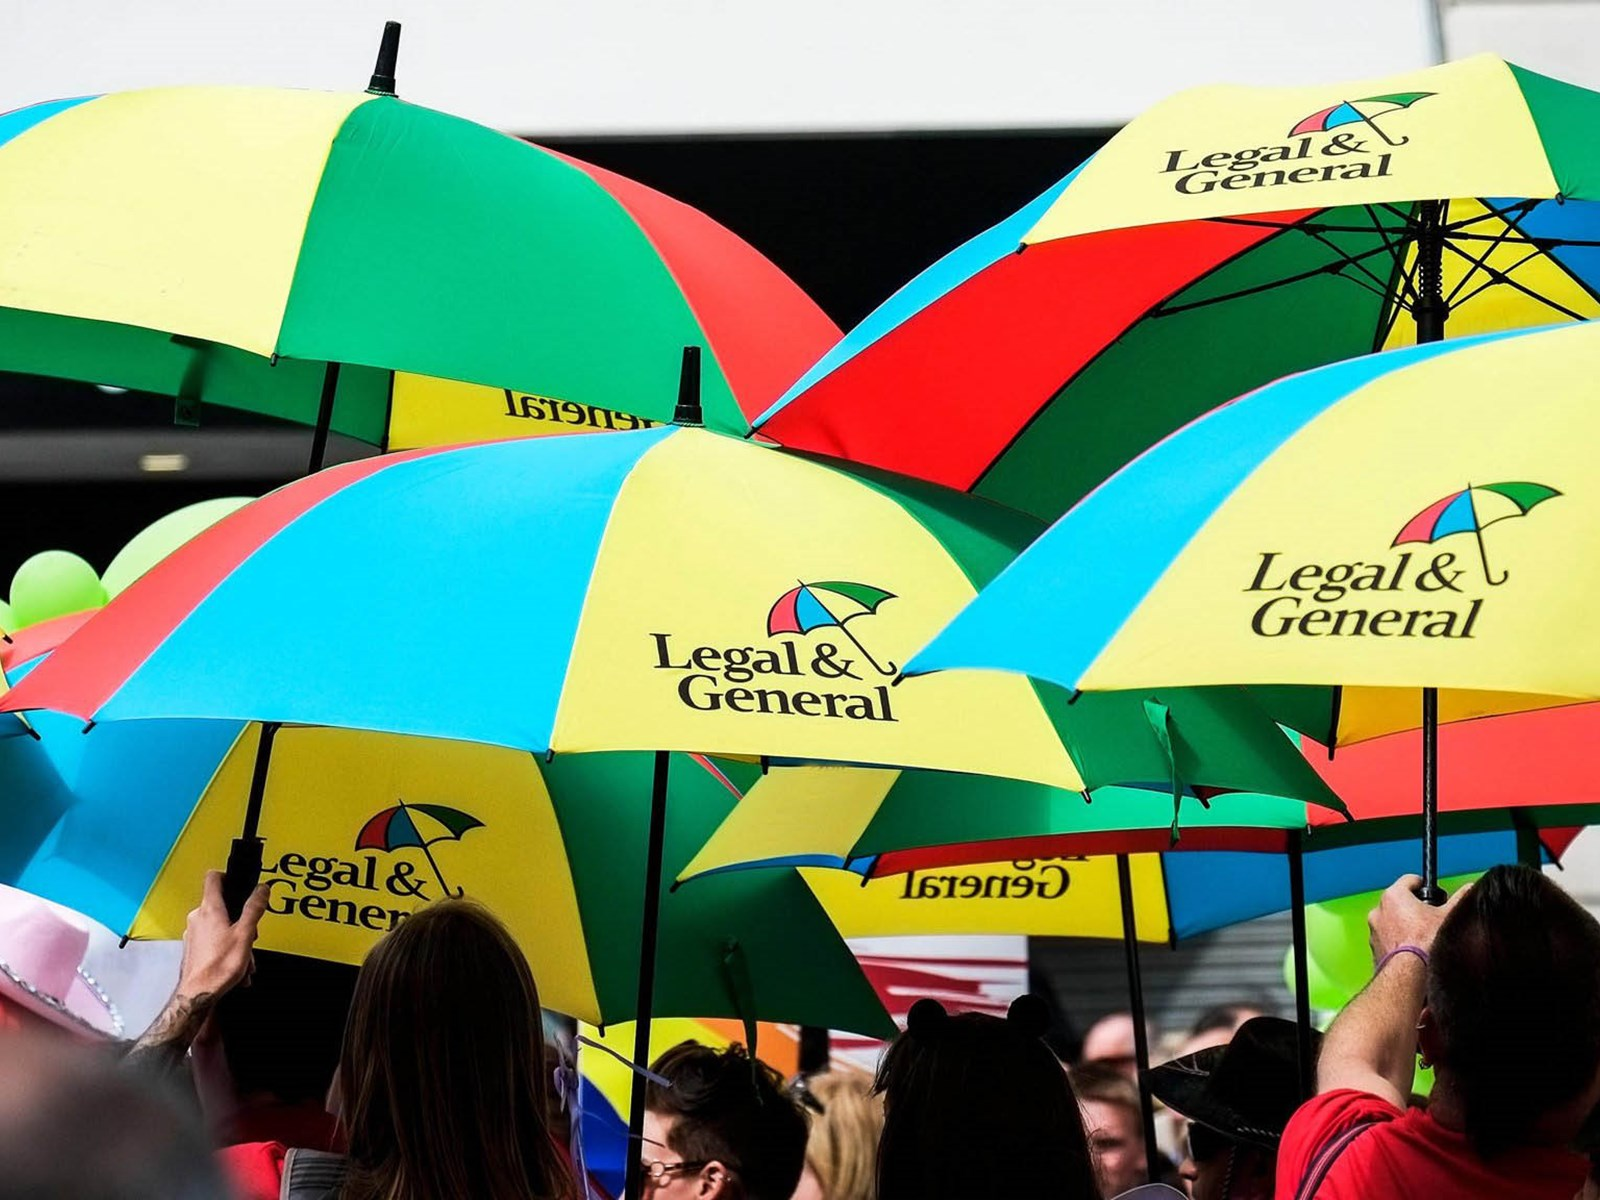 Legal & General announce a maintained interim dividend of 4.93p per share